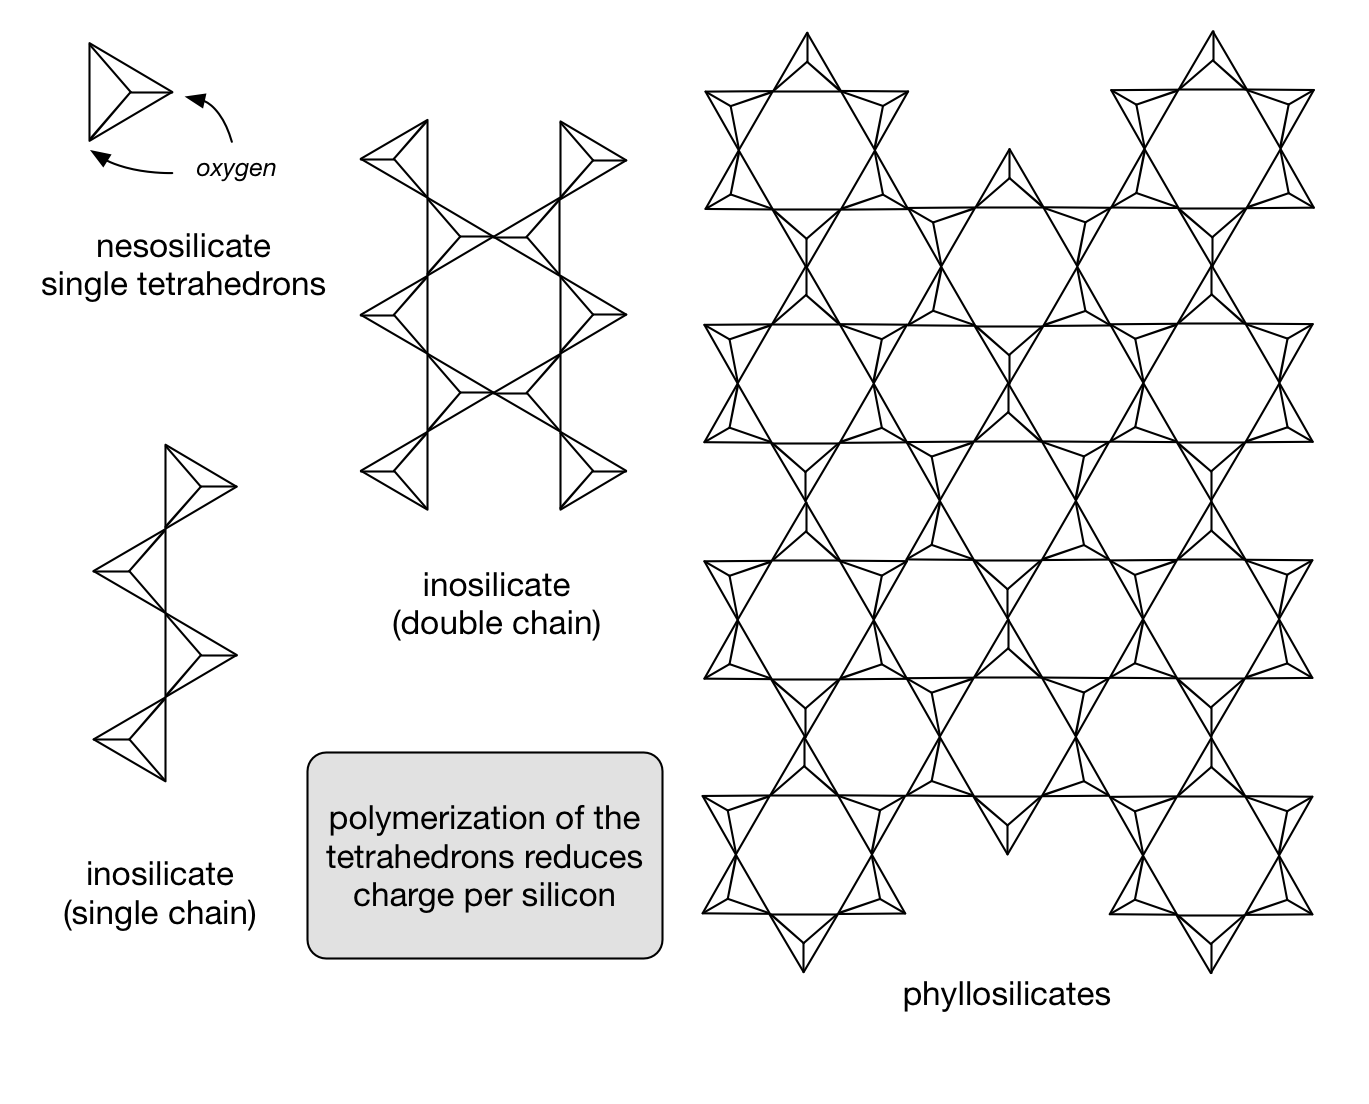 Structures of some silicate minerals. The simplest structure is a tetrahedron. From Klein, C., and C. S. Hurlburt. 1993. Manual of mineralogy. 21st edition. New York: Wiley